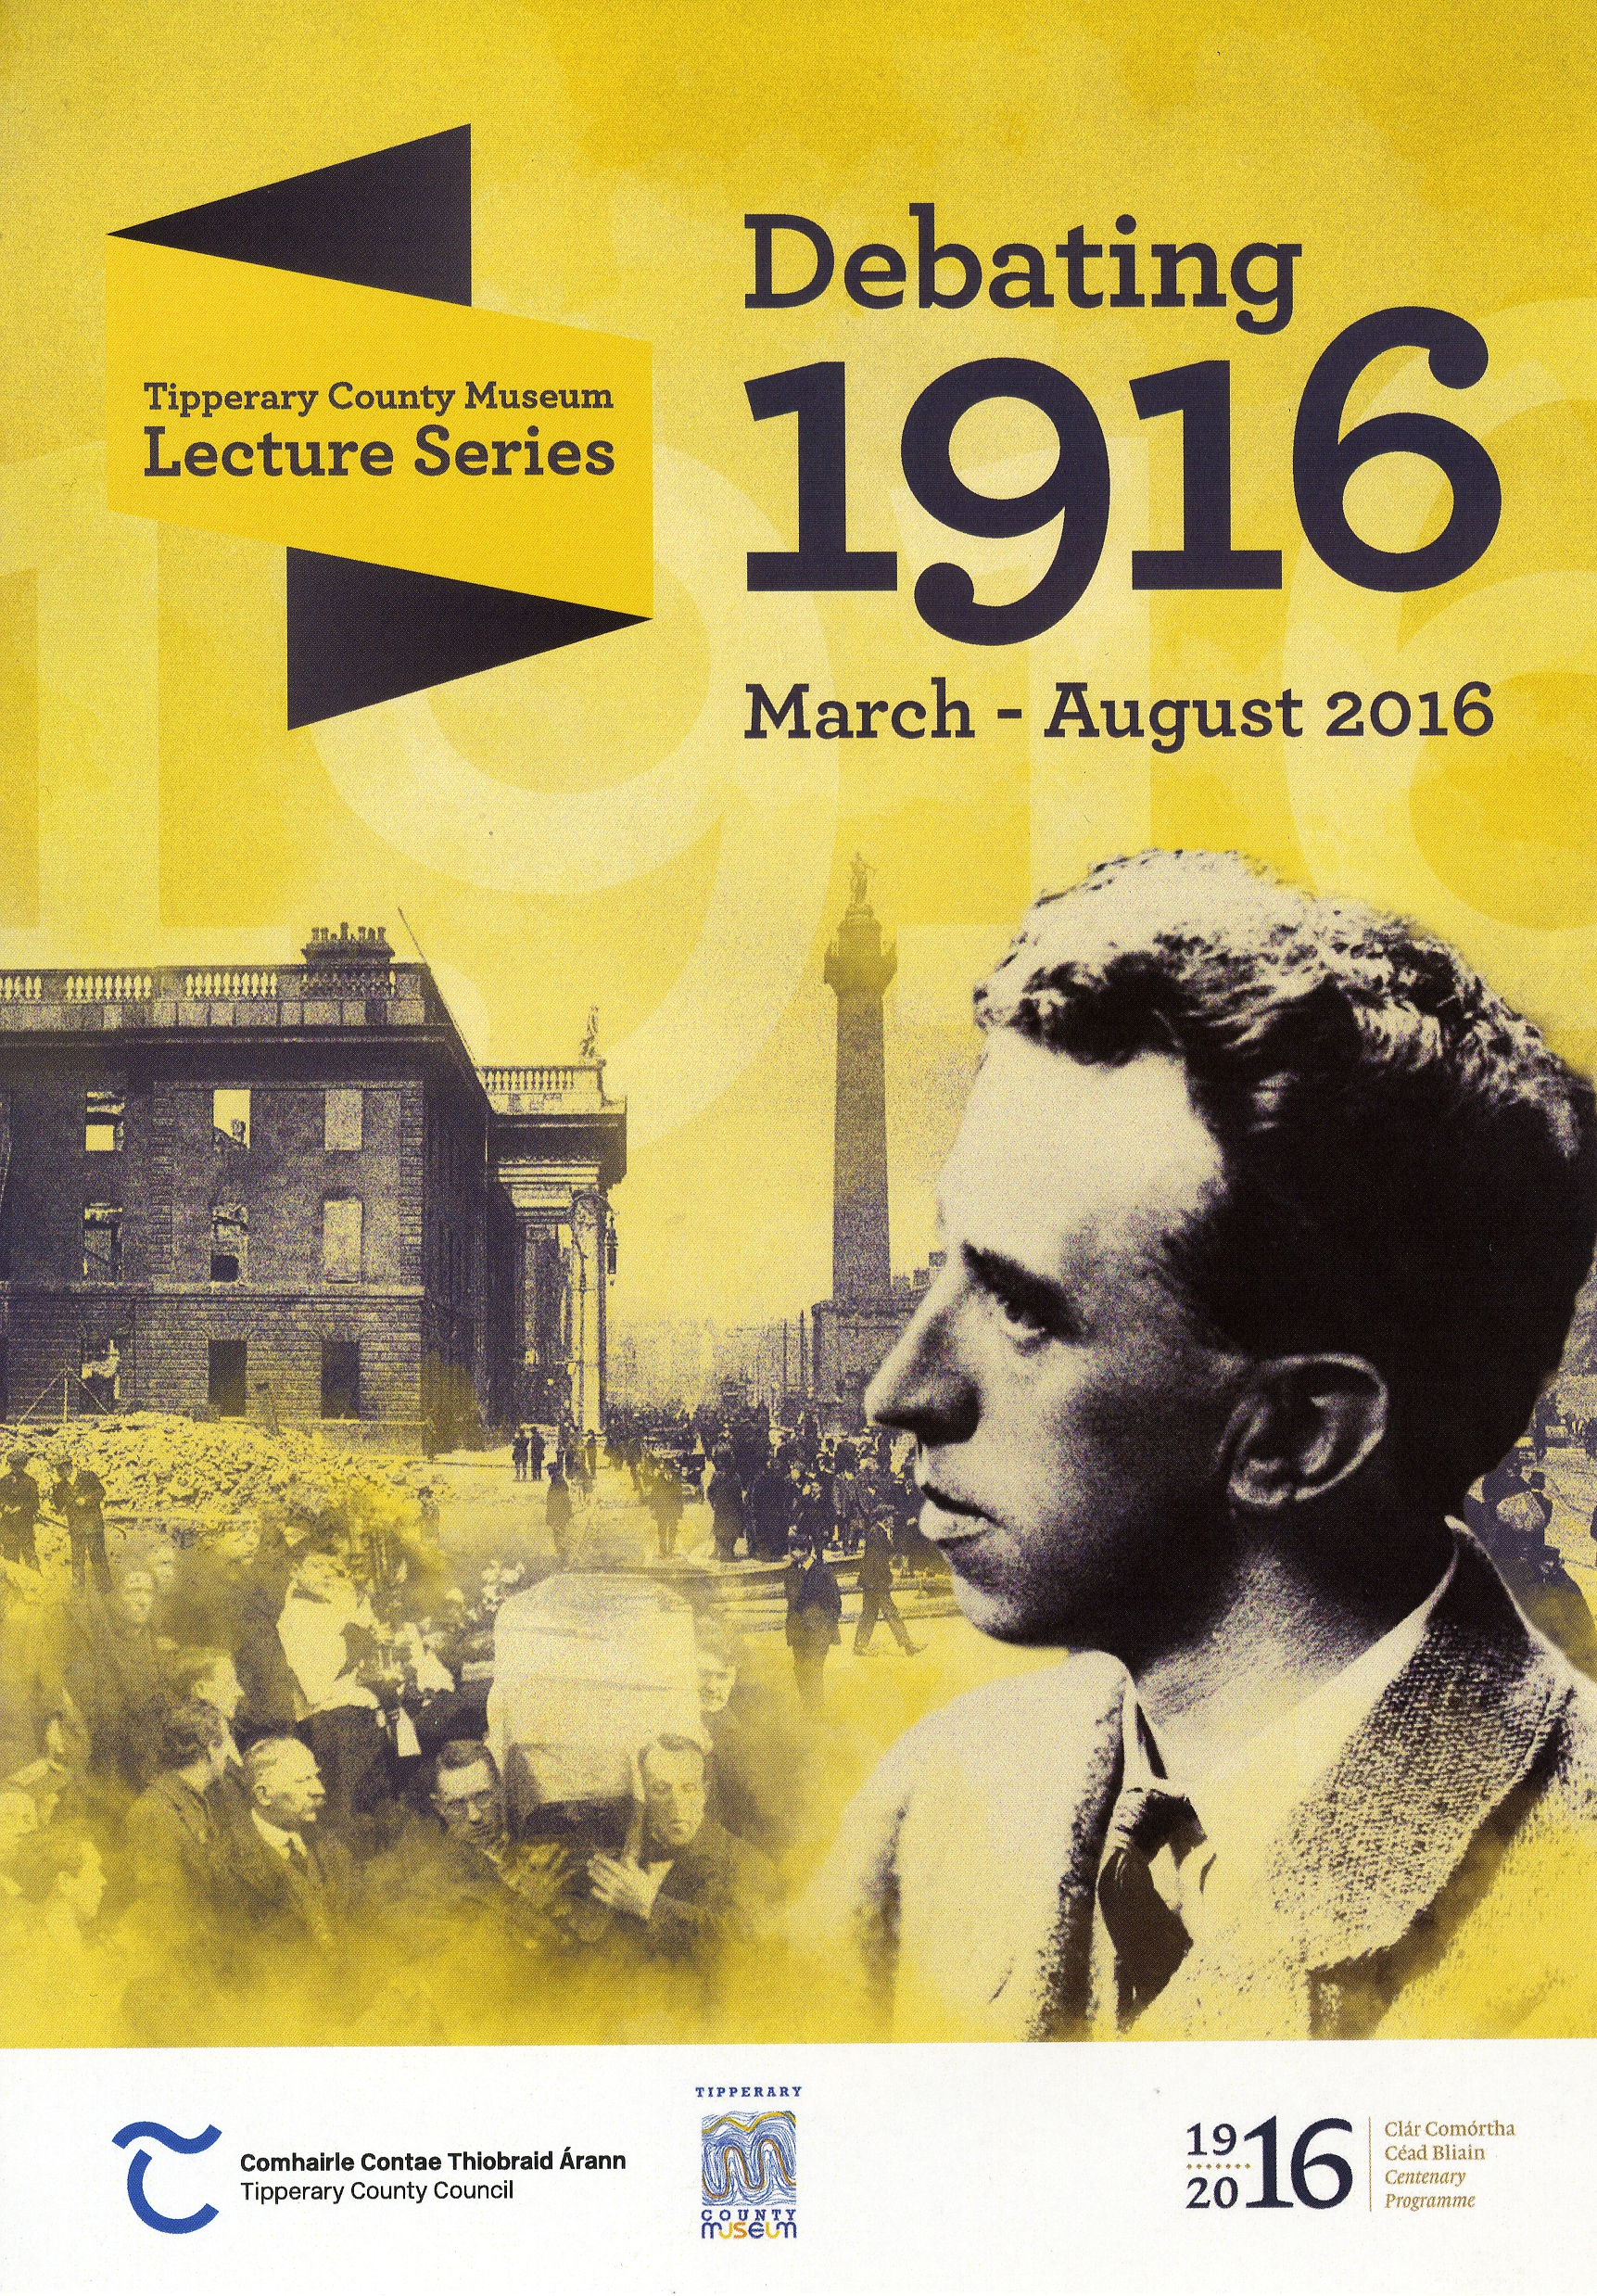 Debating 1916 – Tipperary County Museum Lecture Series